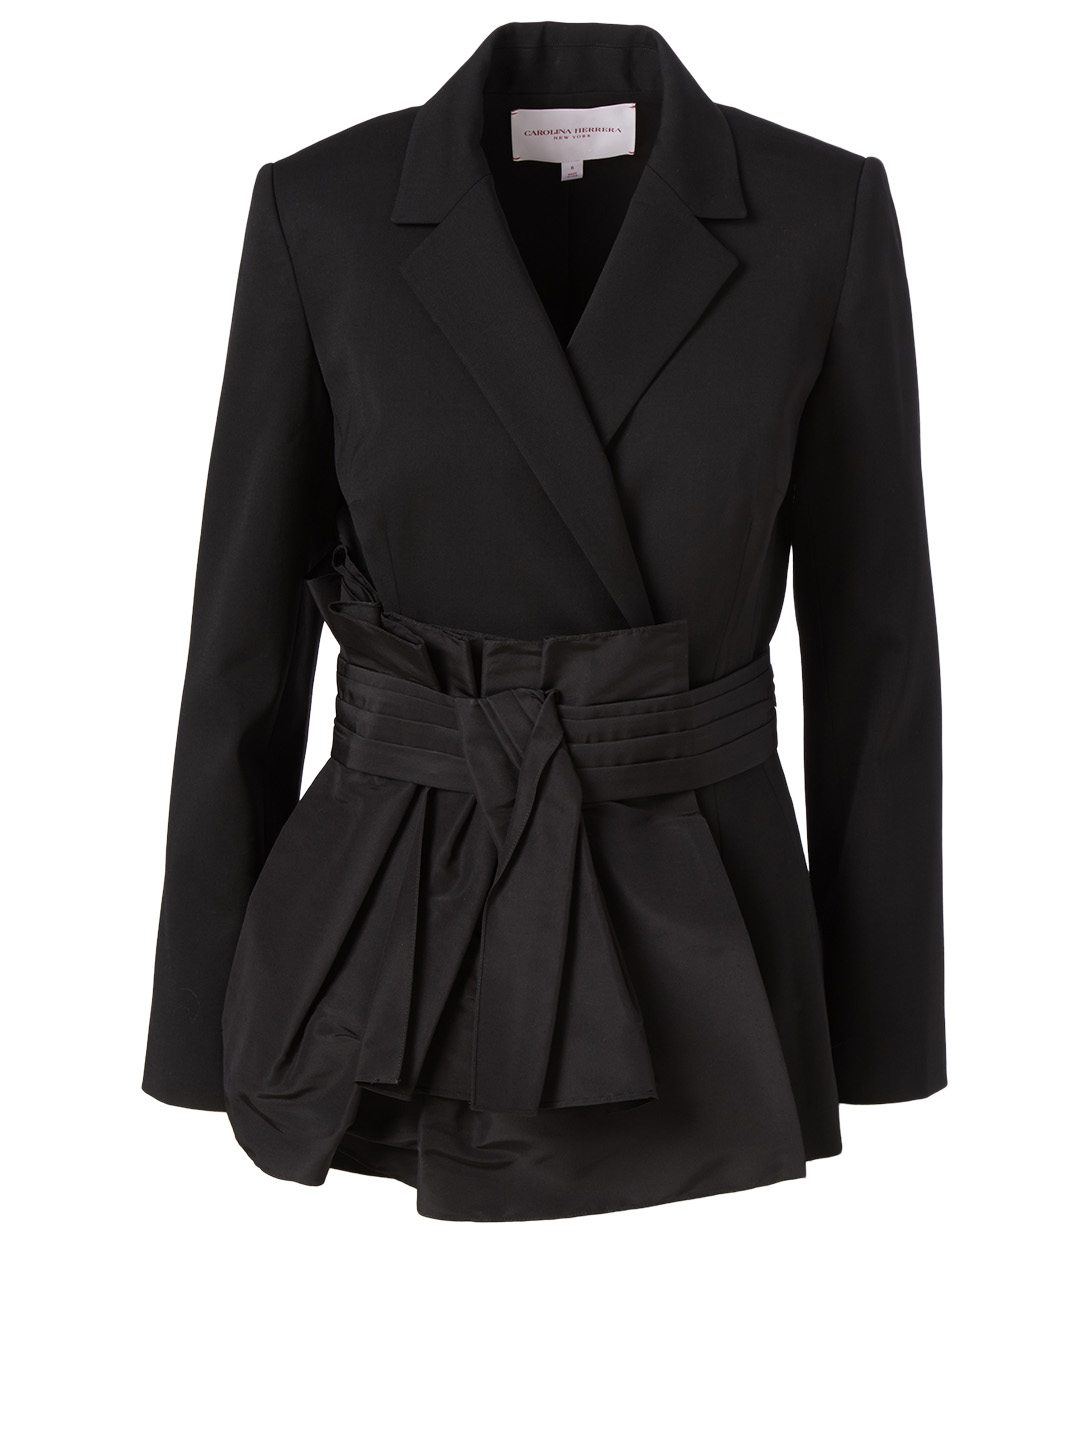 CAROLINA HERRERA Wool Stretch Blazer Women's Black